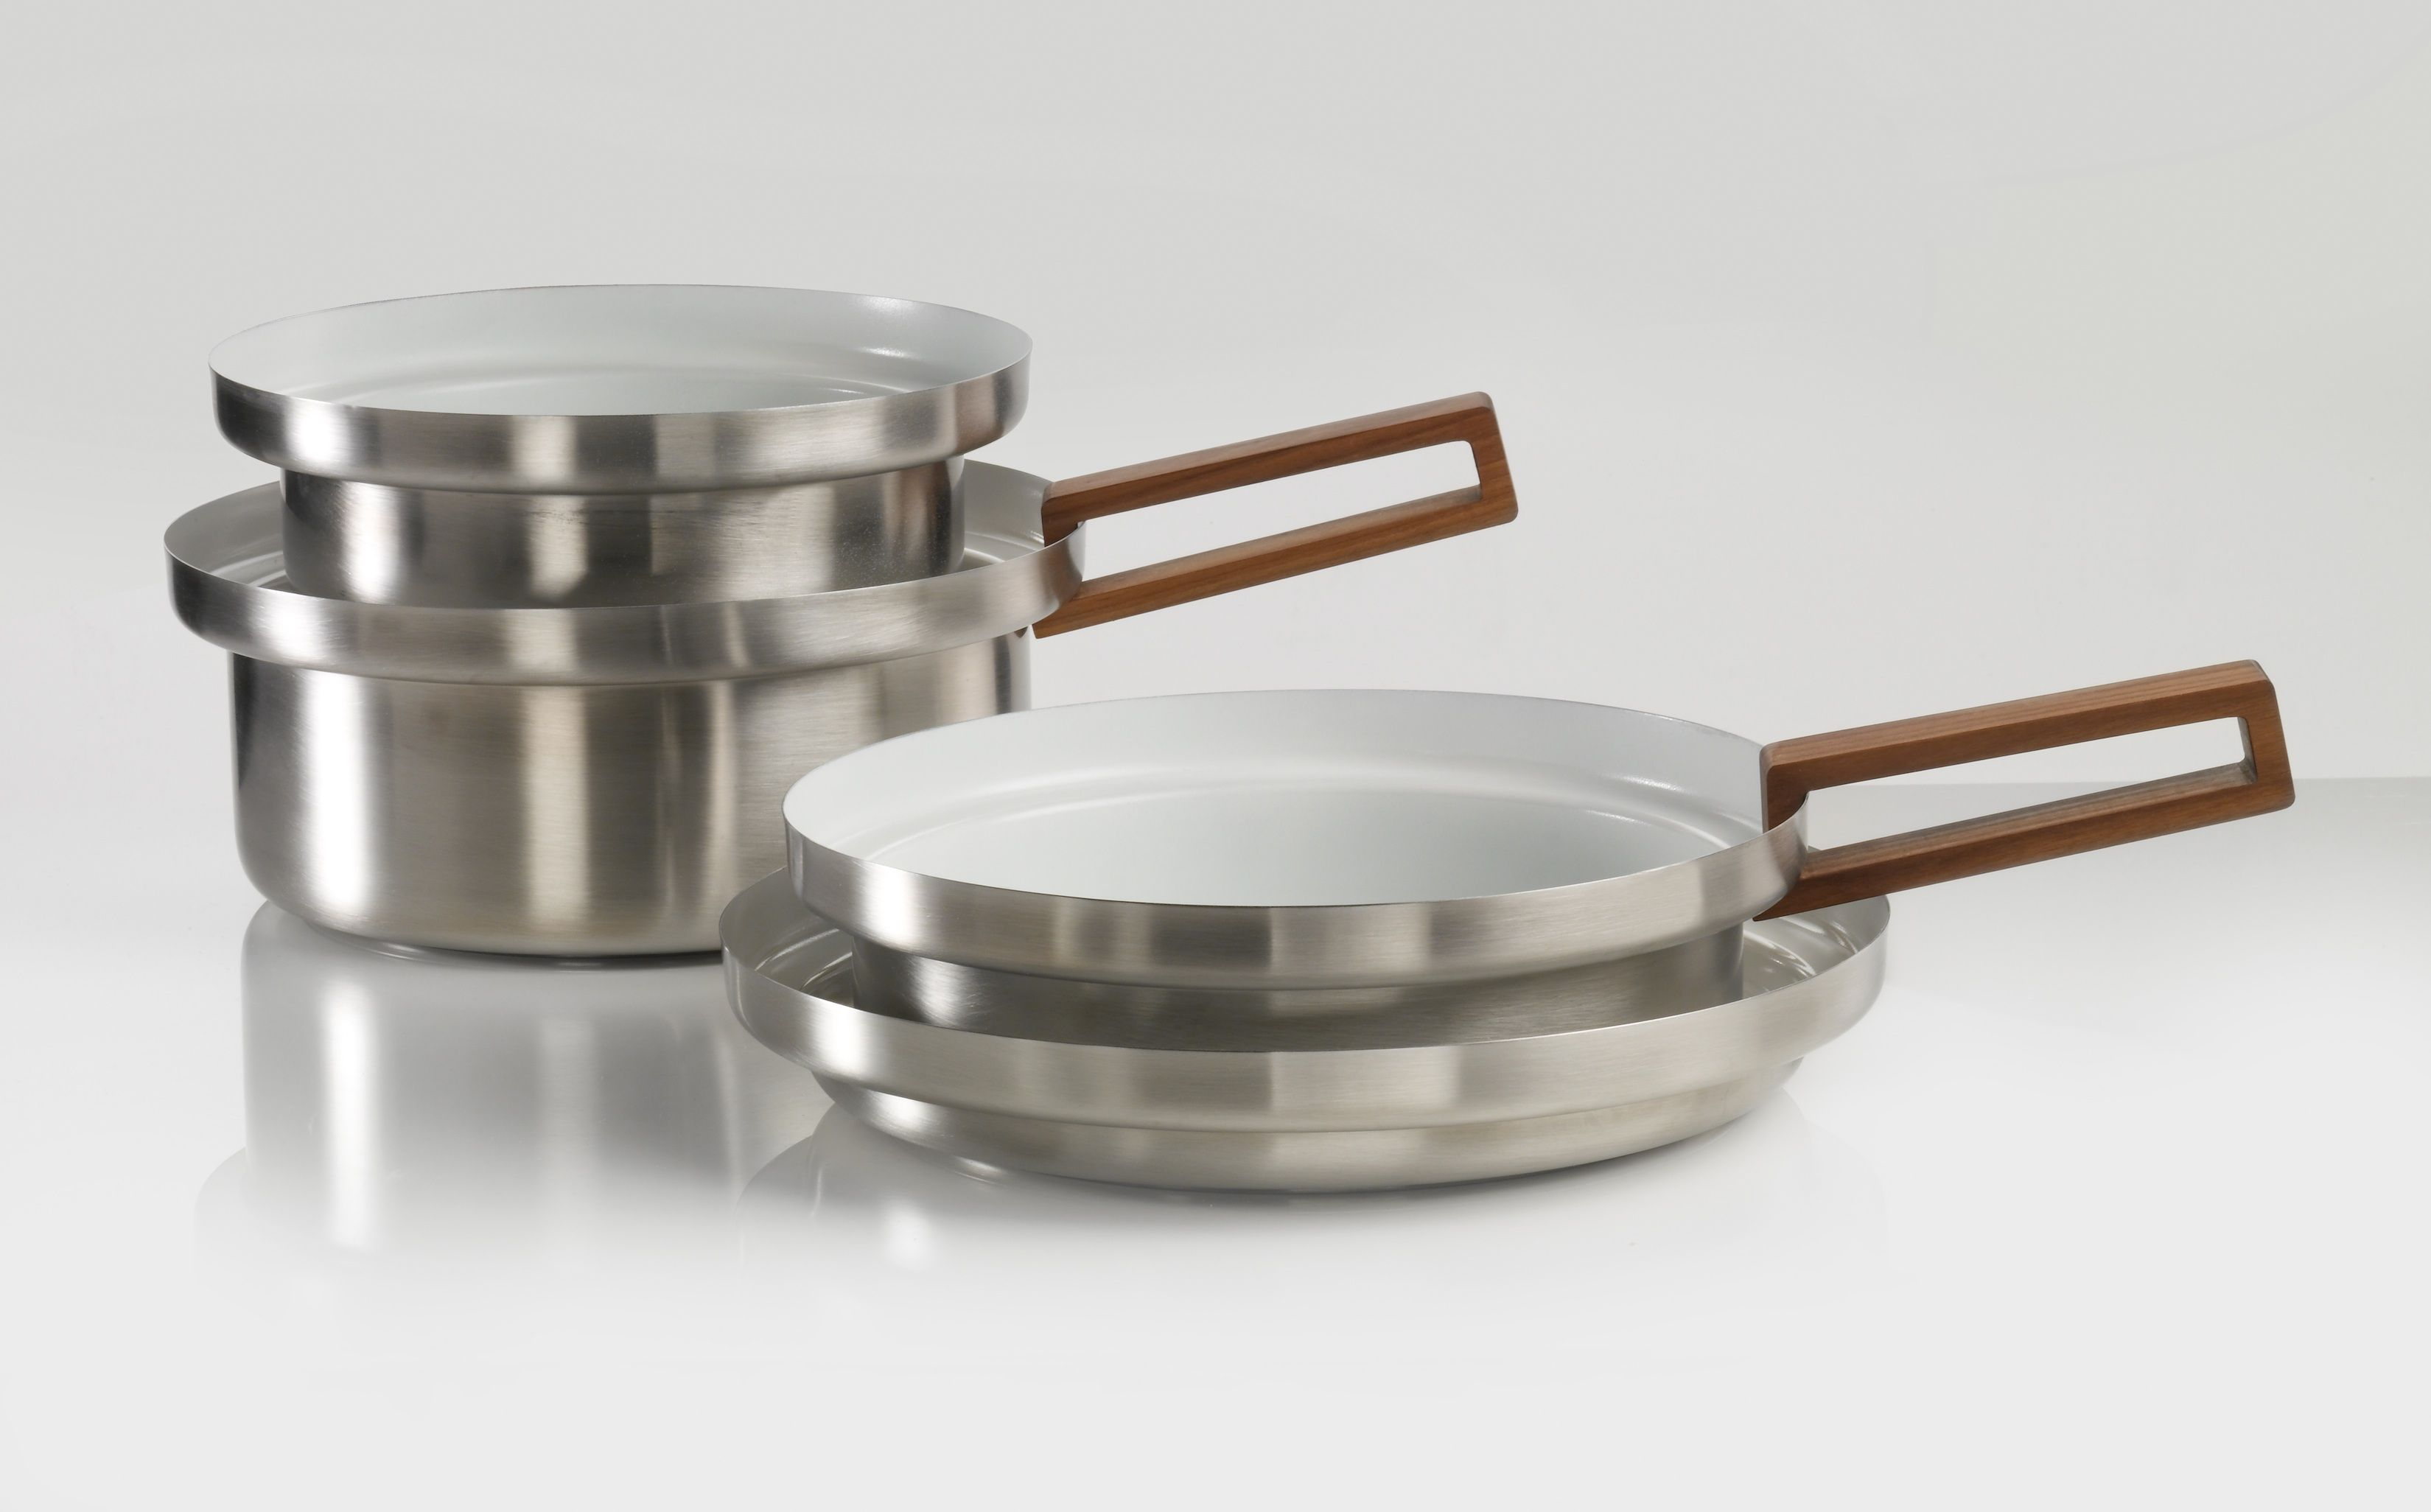 Knindustrie Whitepot Range For The Kitchen Designed By